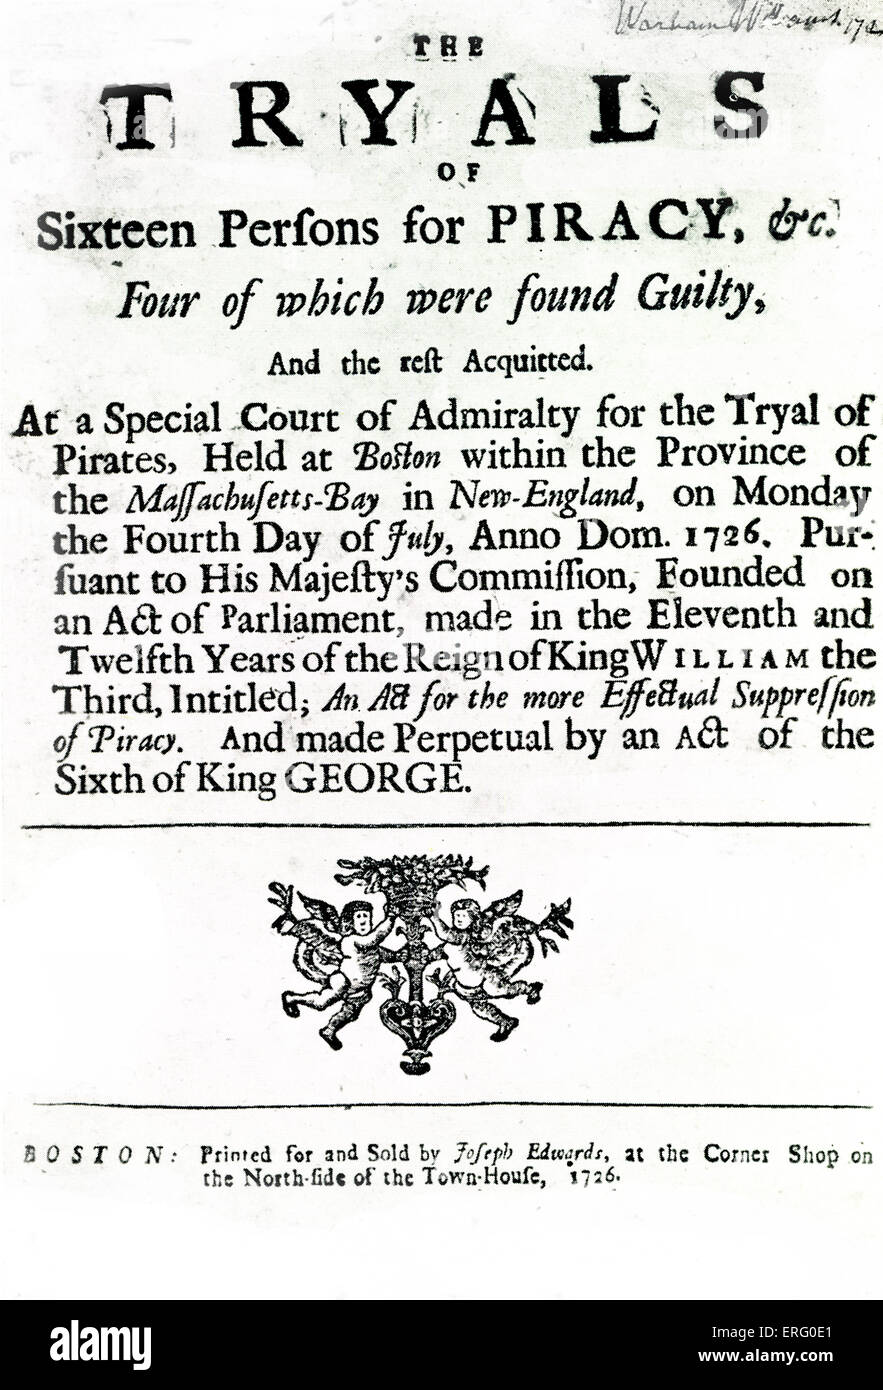 'The Tryals of Sixteen Persons for Piracy', title-page of trial accounts from July 4, 1726, in Boston, Massachusetts. - Stock Image